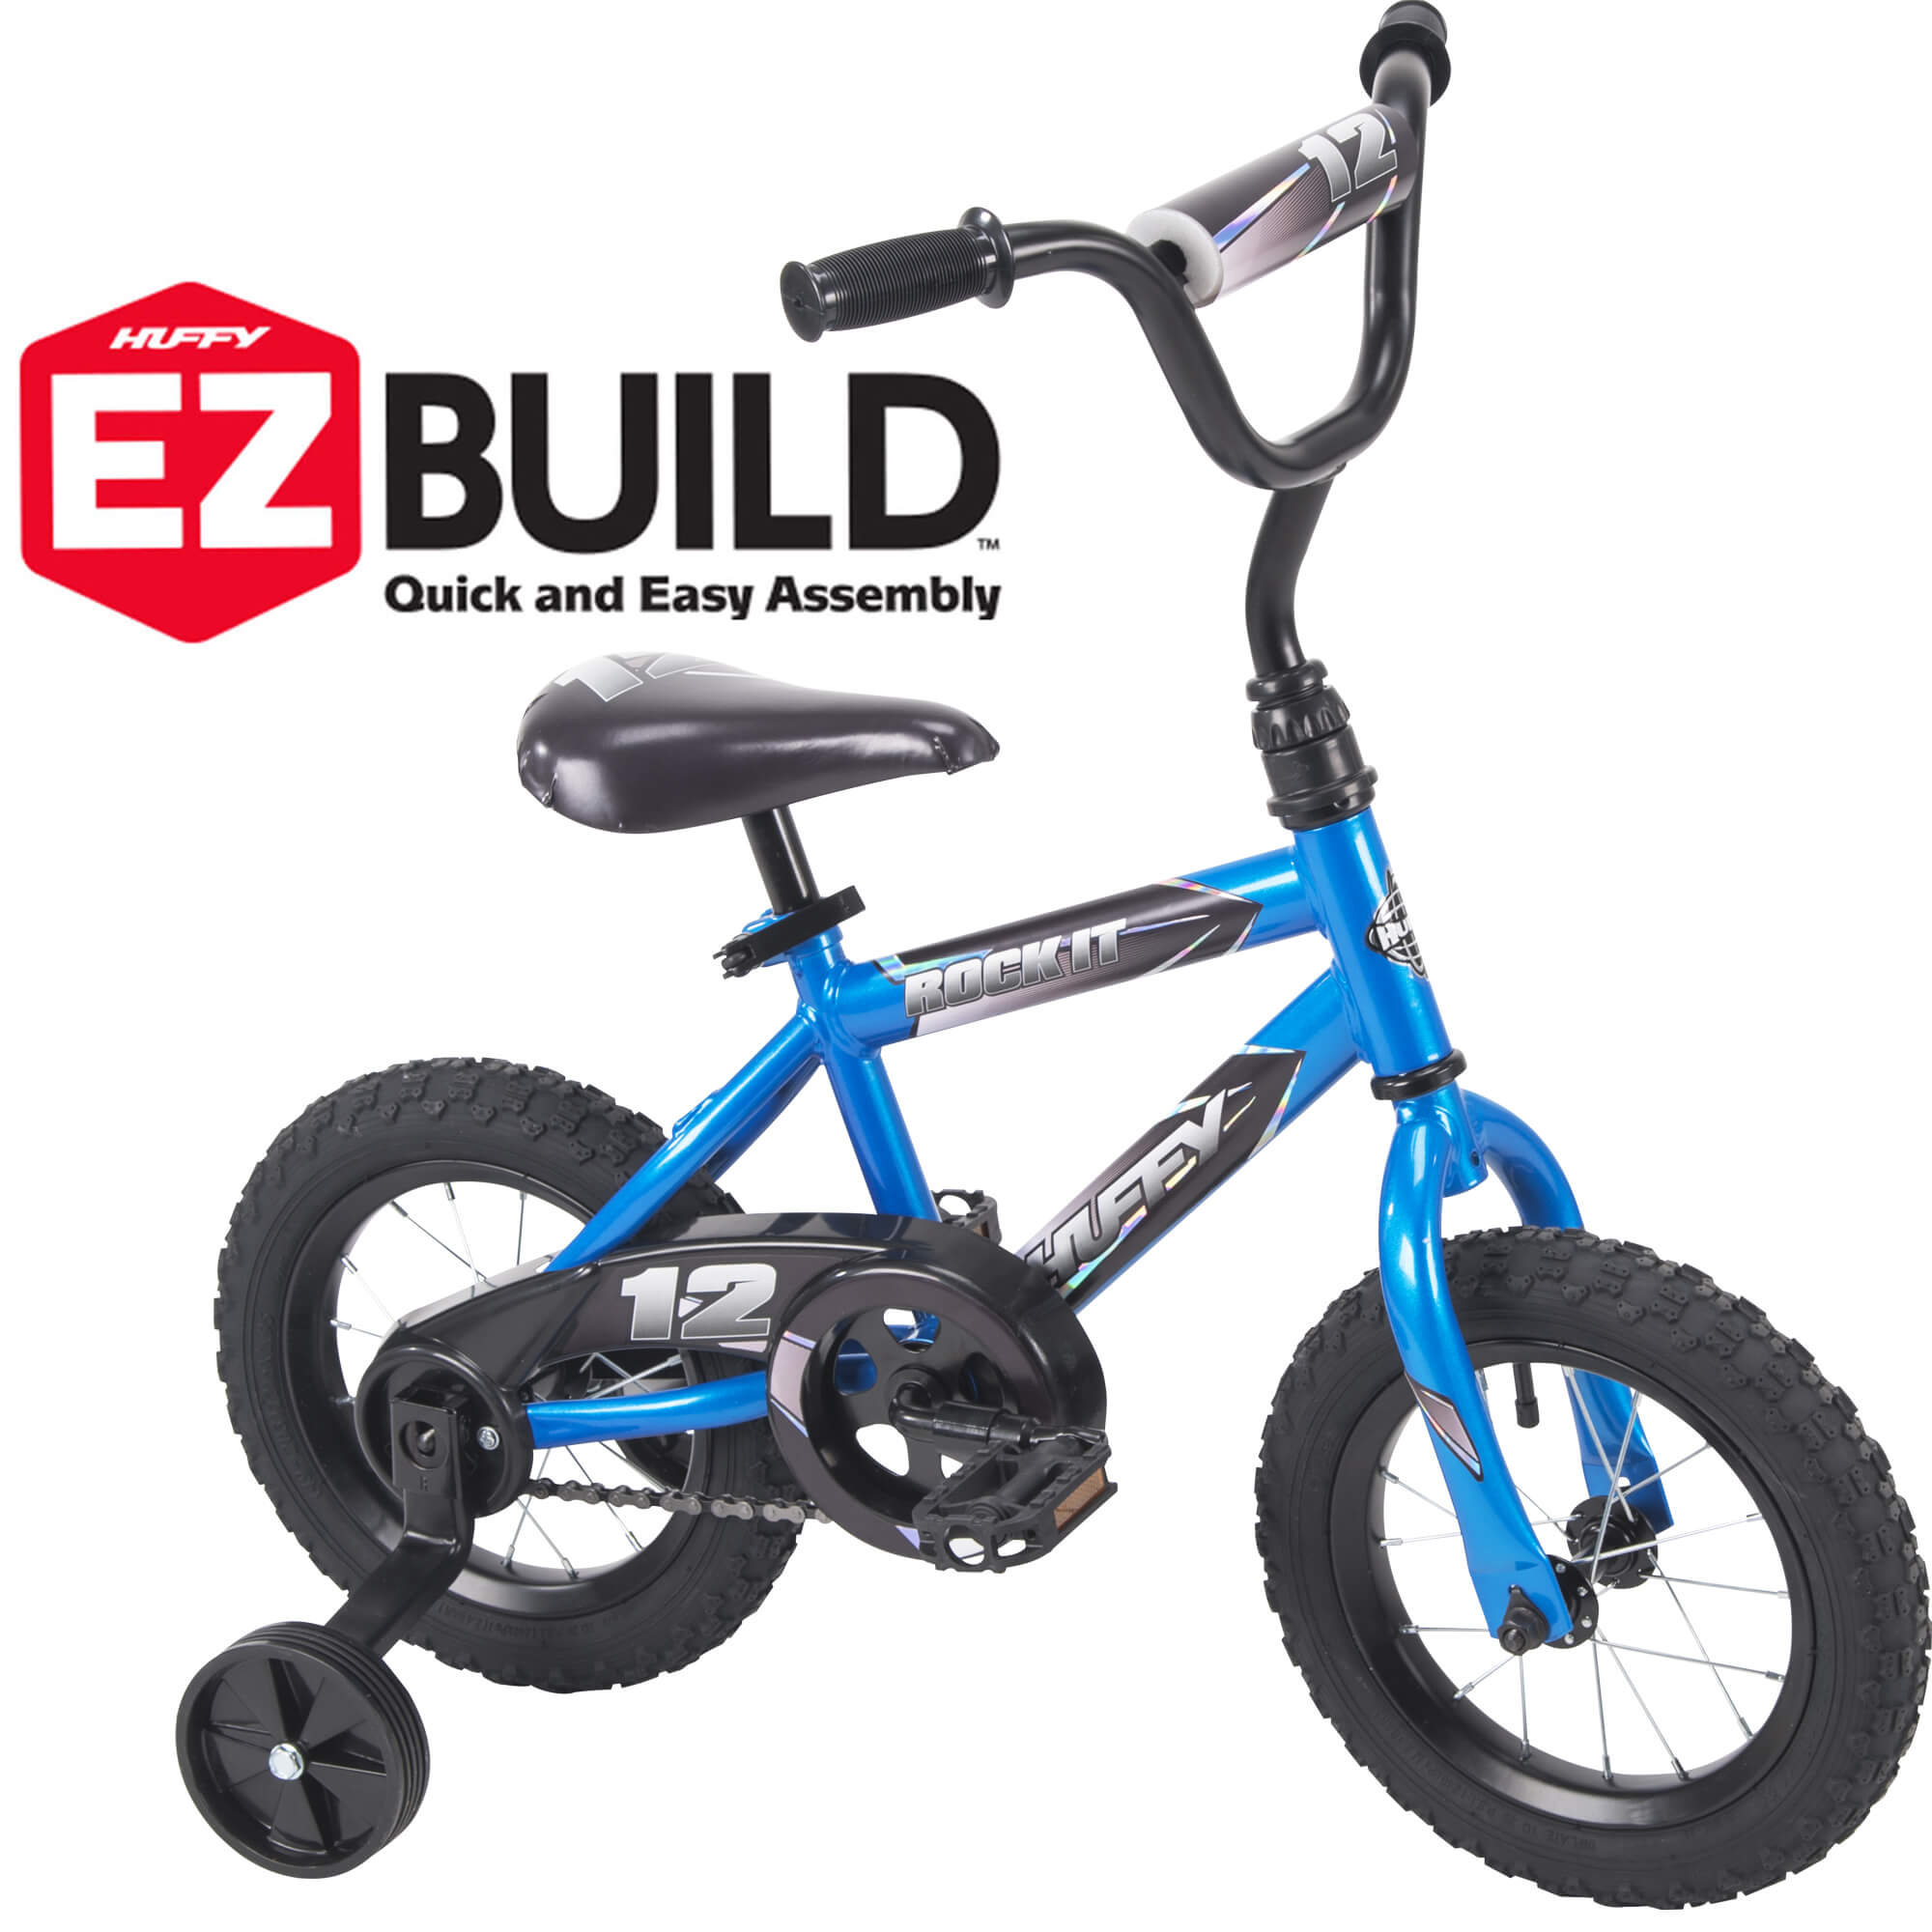 "Huffy 12"" Rock It EZ Build Kids Bike for Boys, Blue"